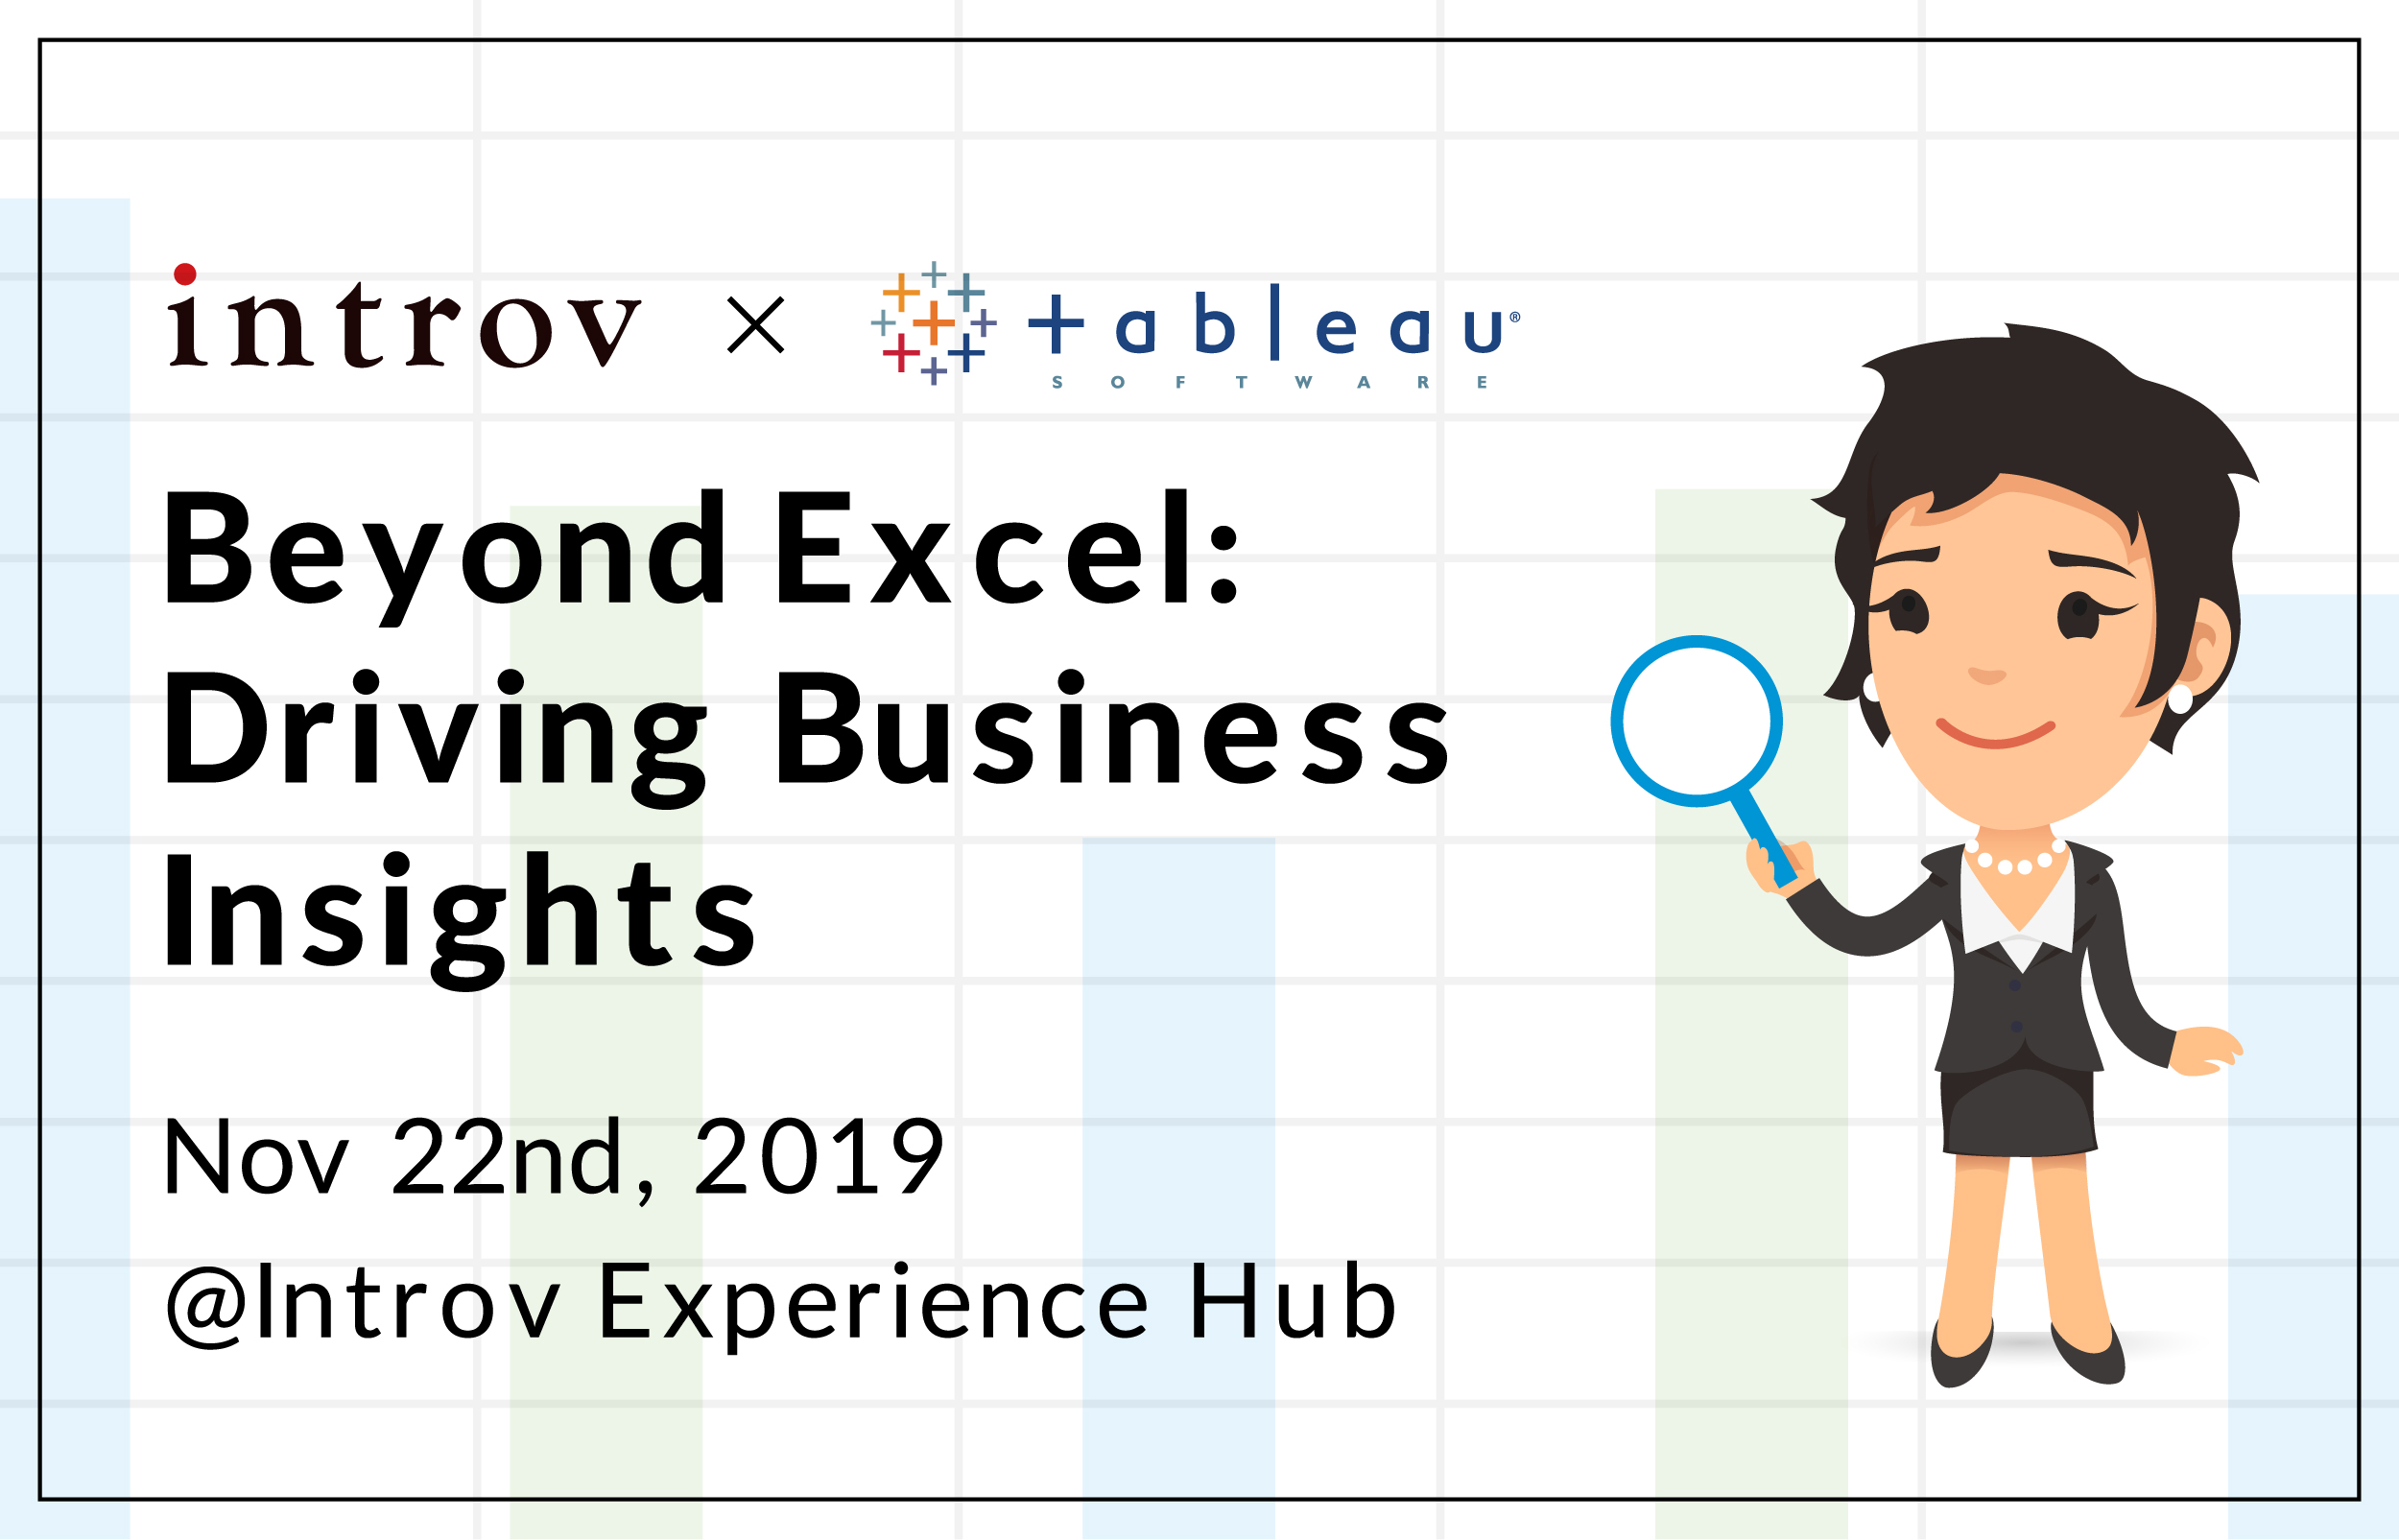 Tableau Workshop: Beyond Excel: Driving Business Insights (November 22nd, 2019)